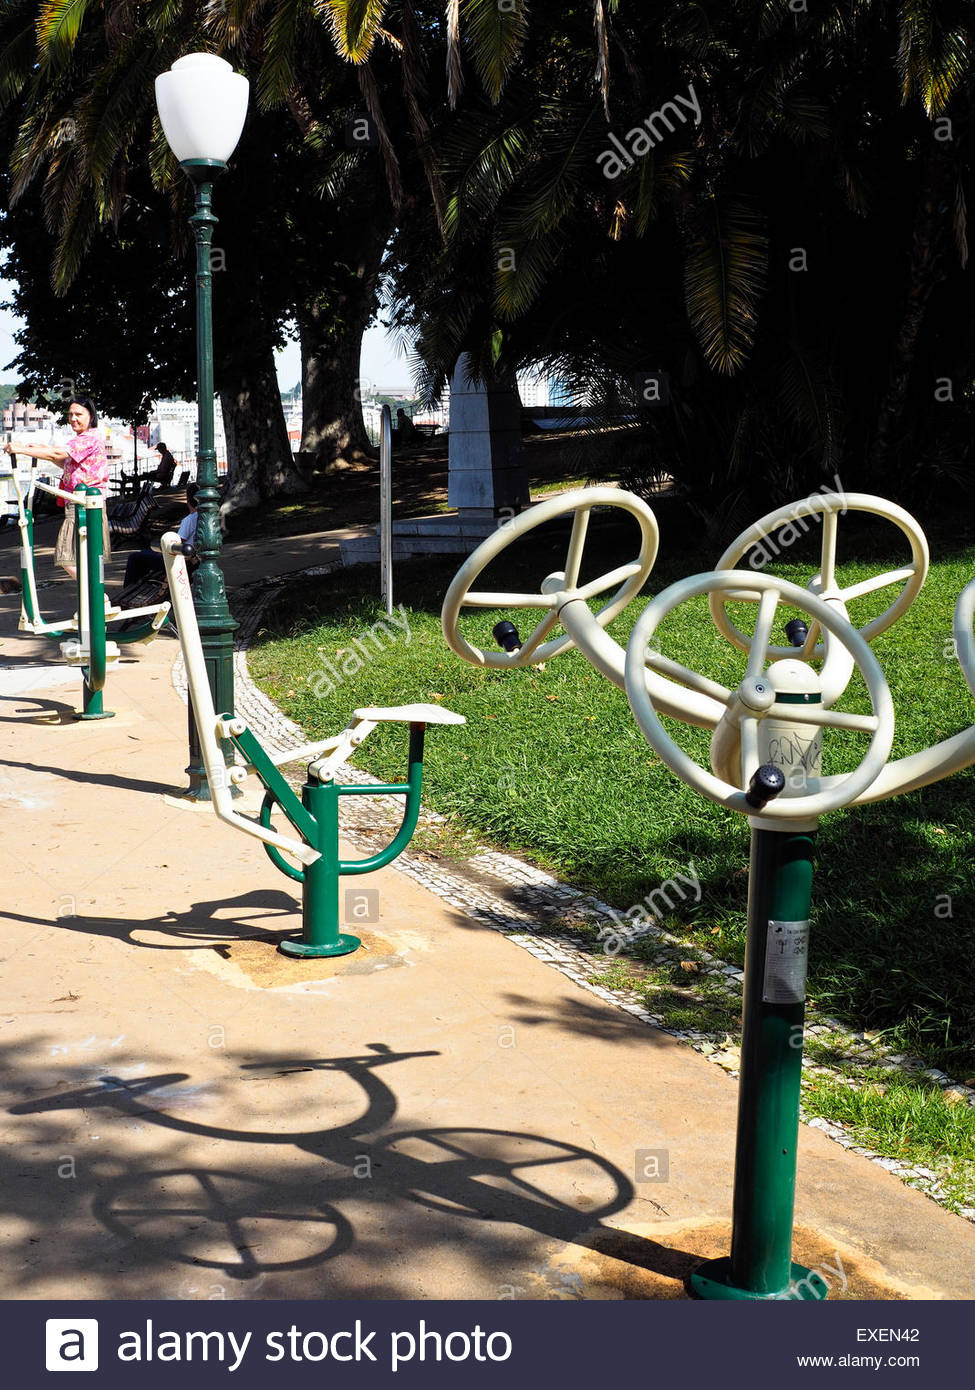 Public exercise machines in Jardim do Torel park, Lisbon, Portugal - Stock Image